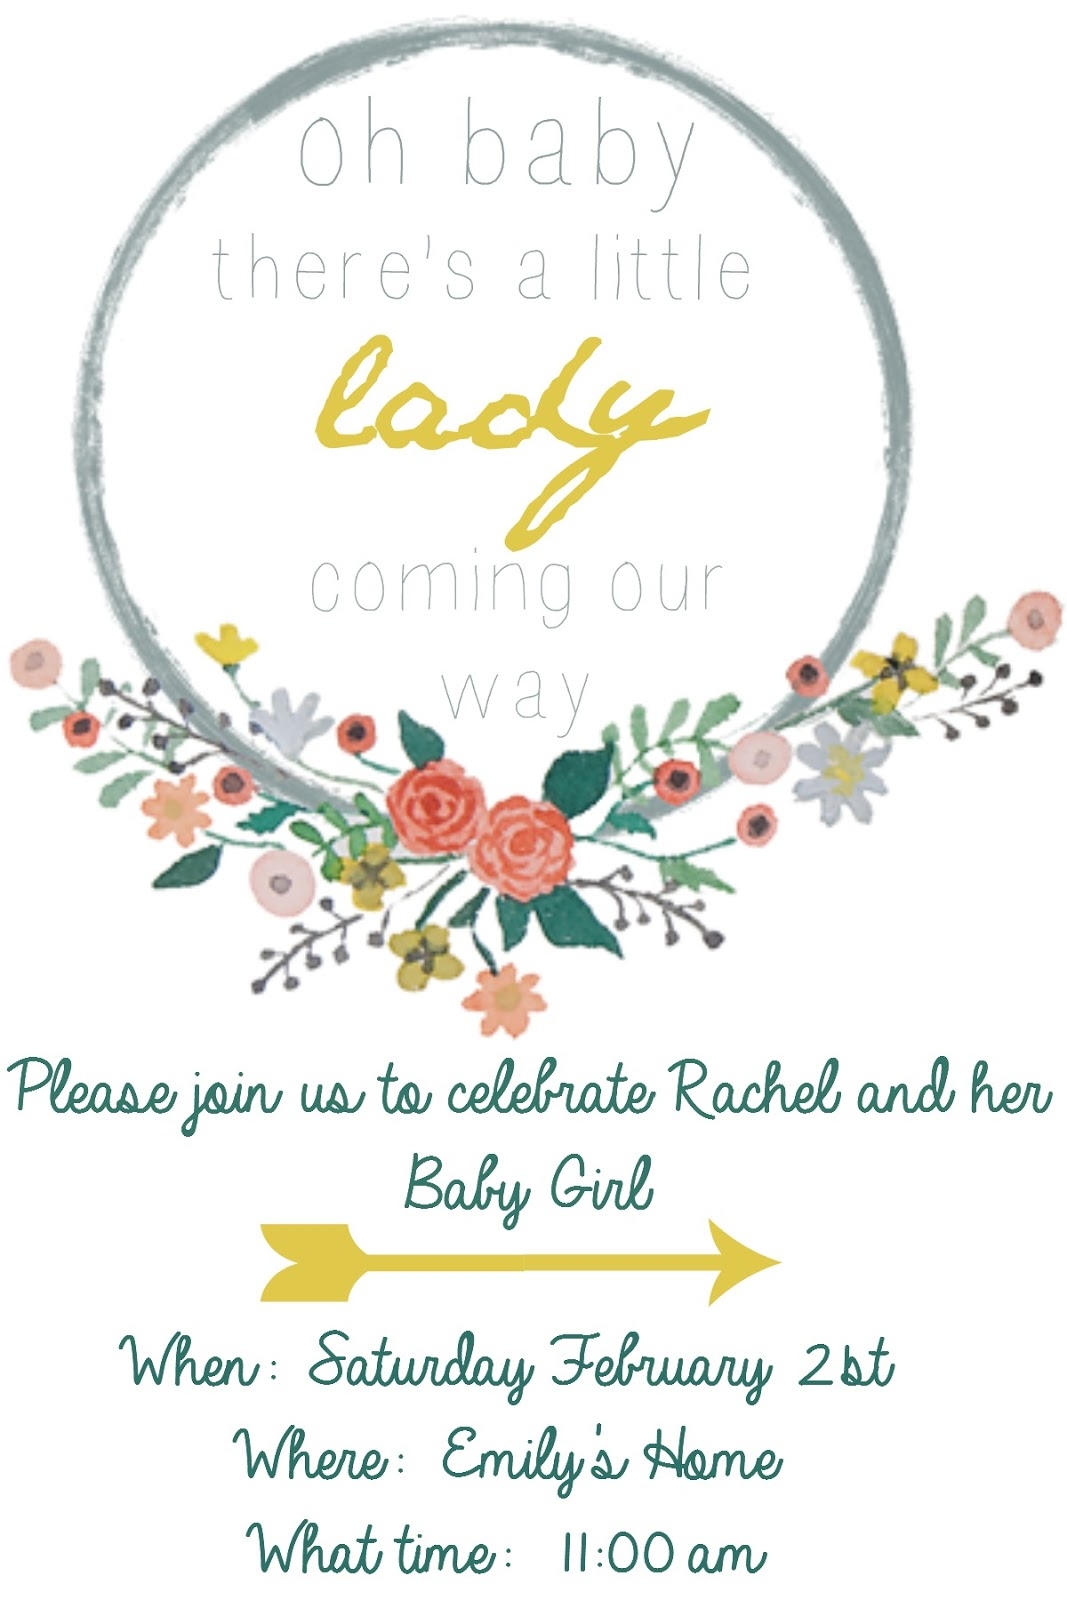 Emmy in her element free baby shower invitation template and floral free baby shower invitation template and floral wreath clip art filmwisefo